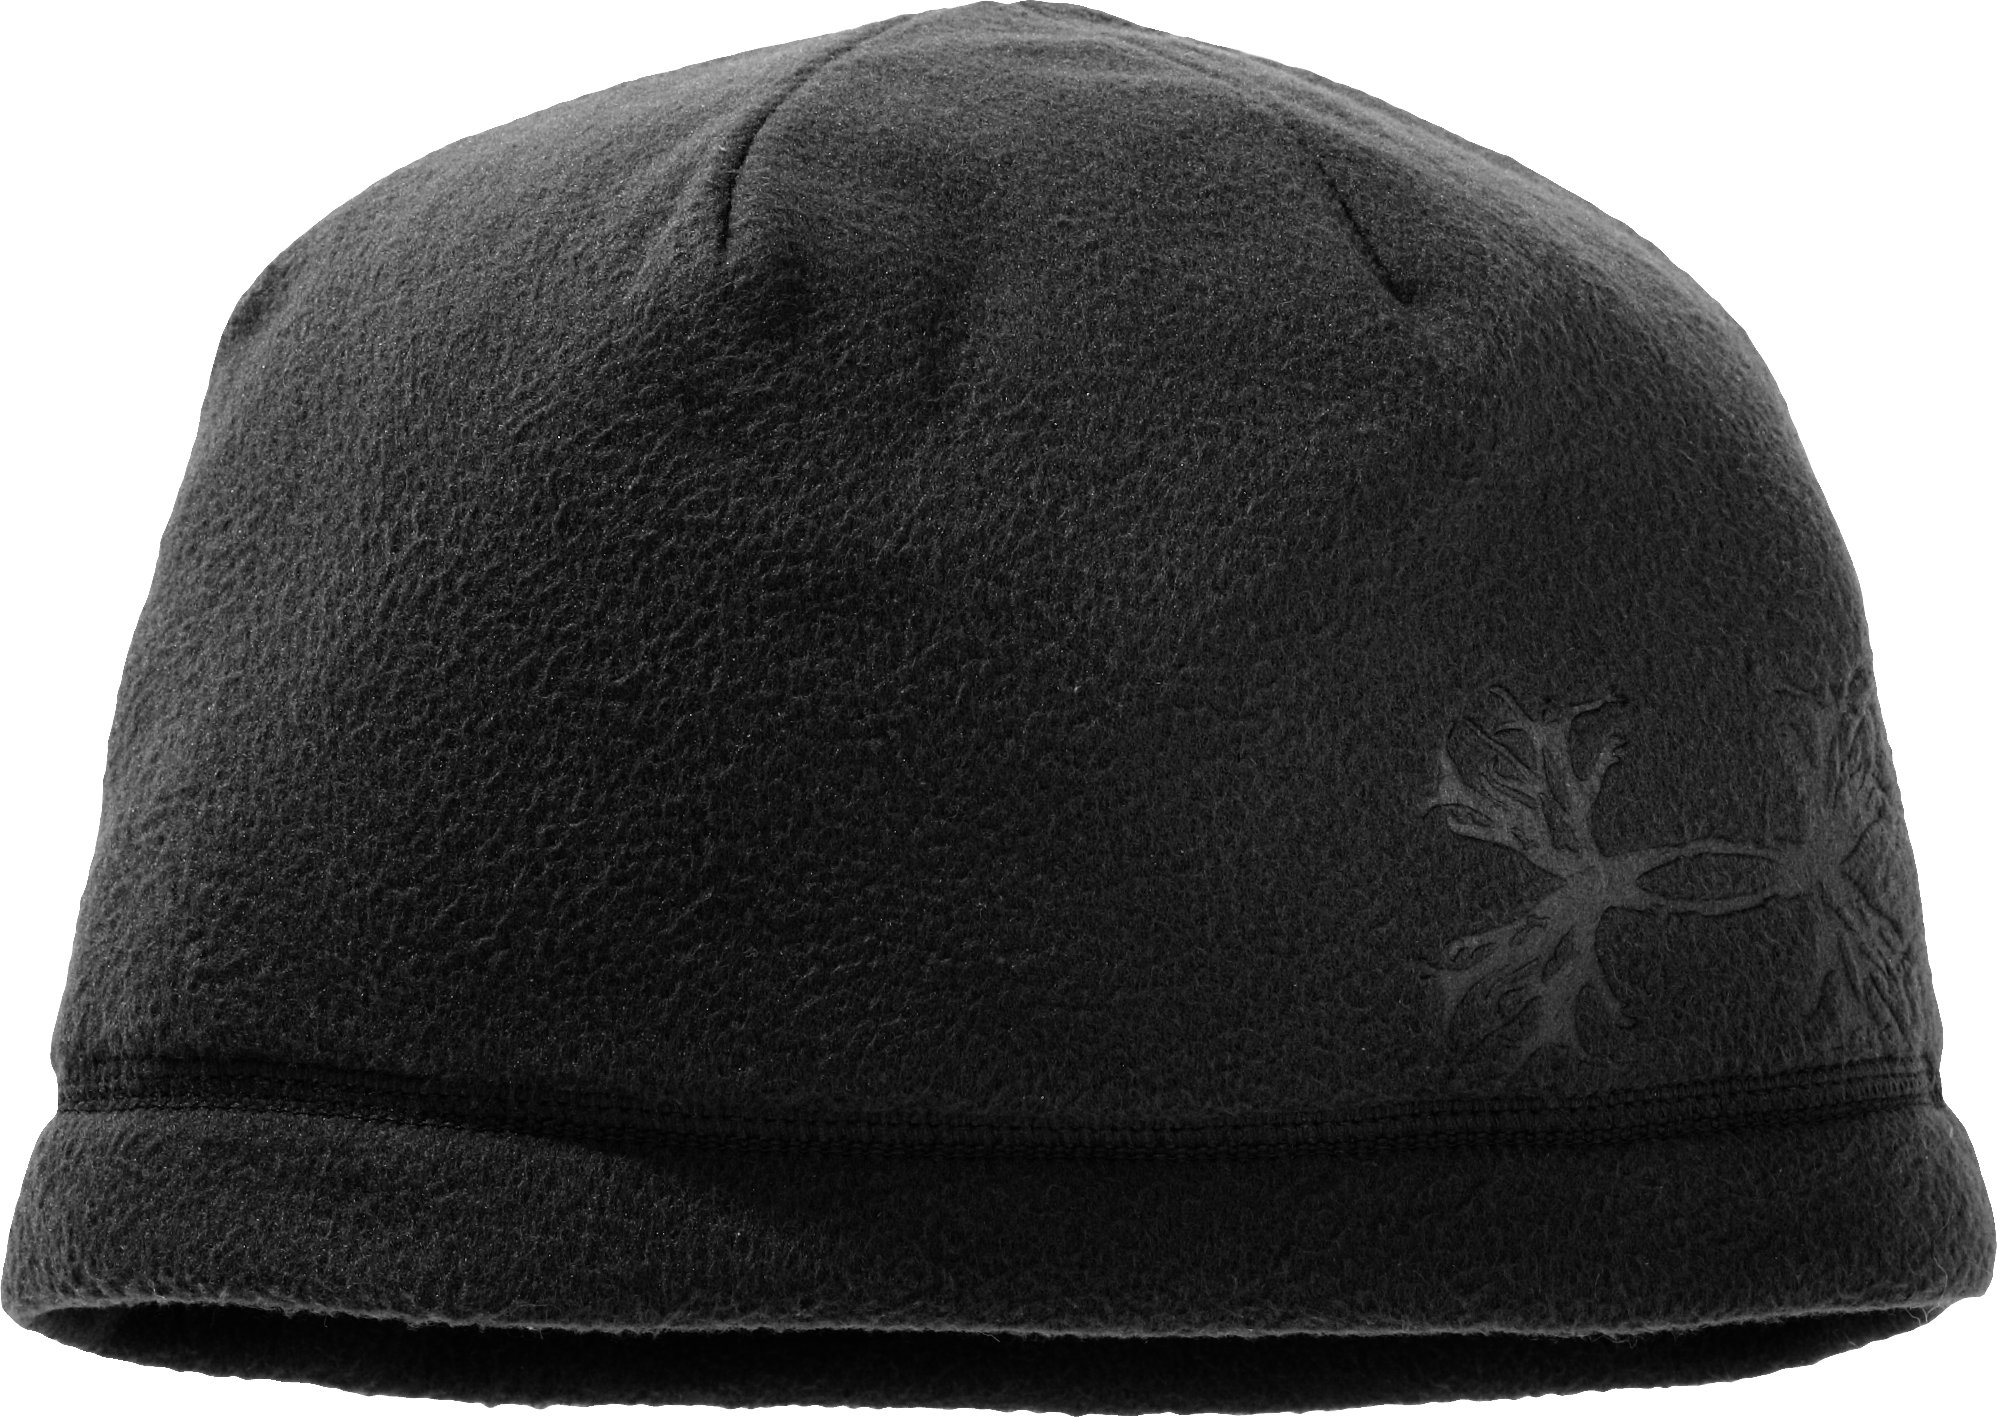 Men's Antler Fleece Beanie, Black